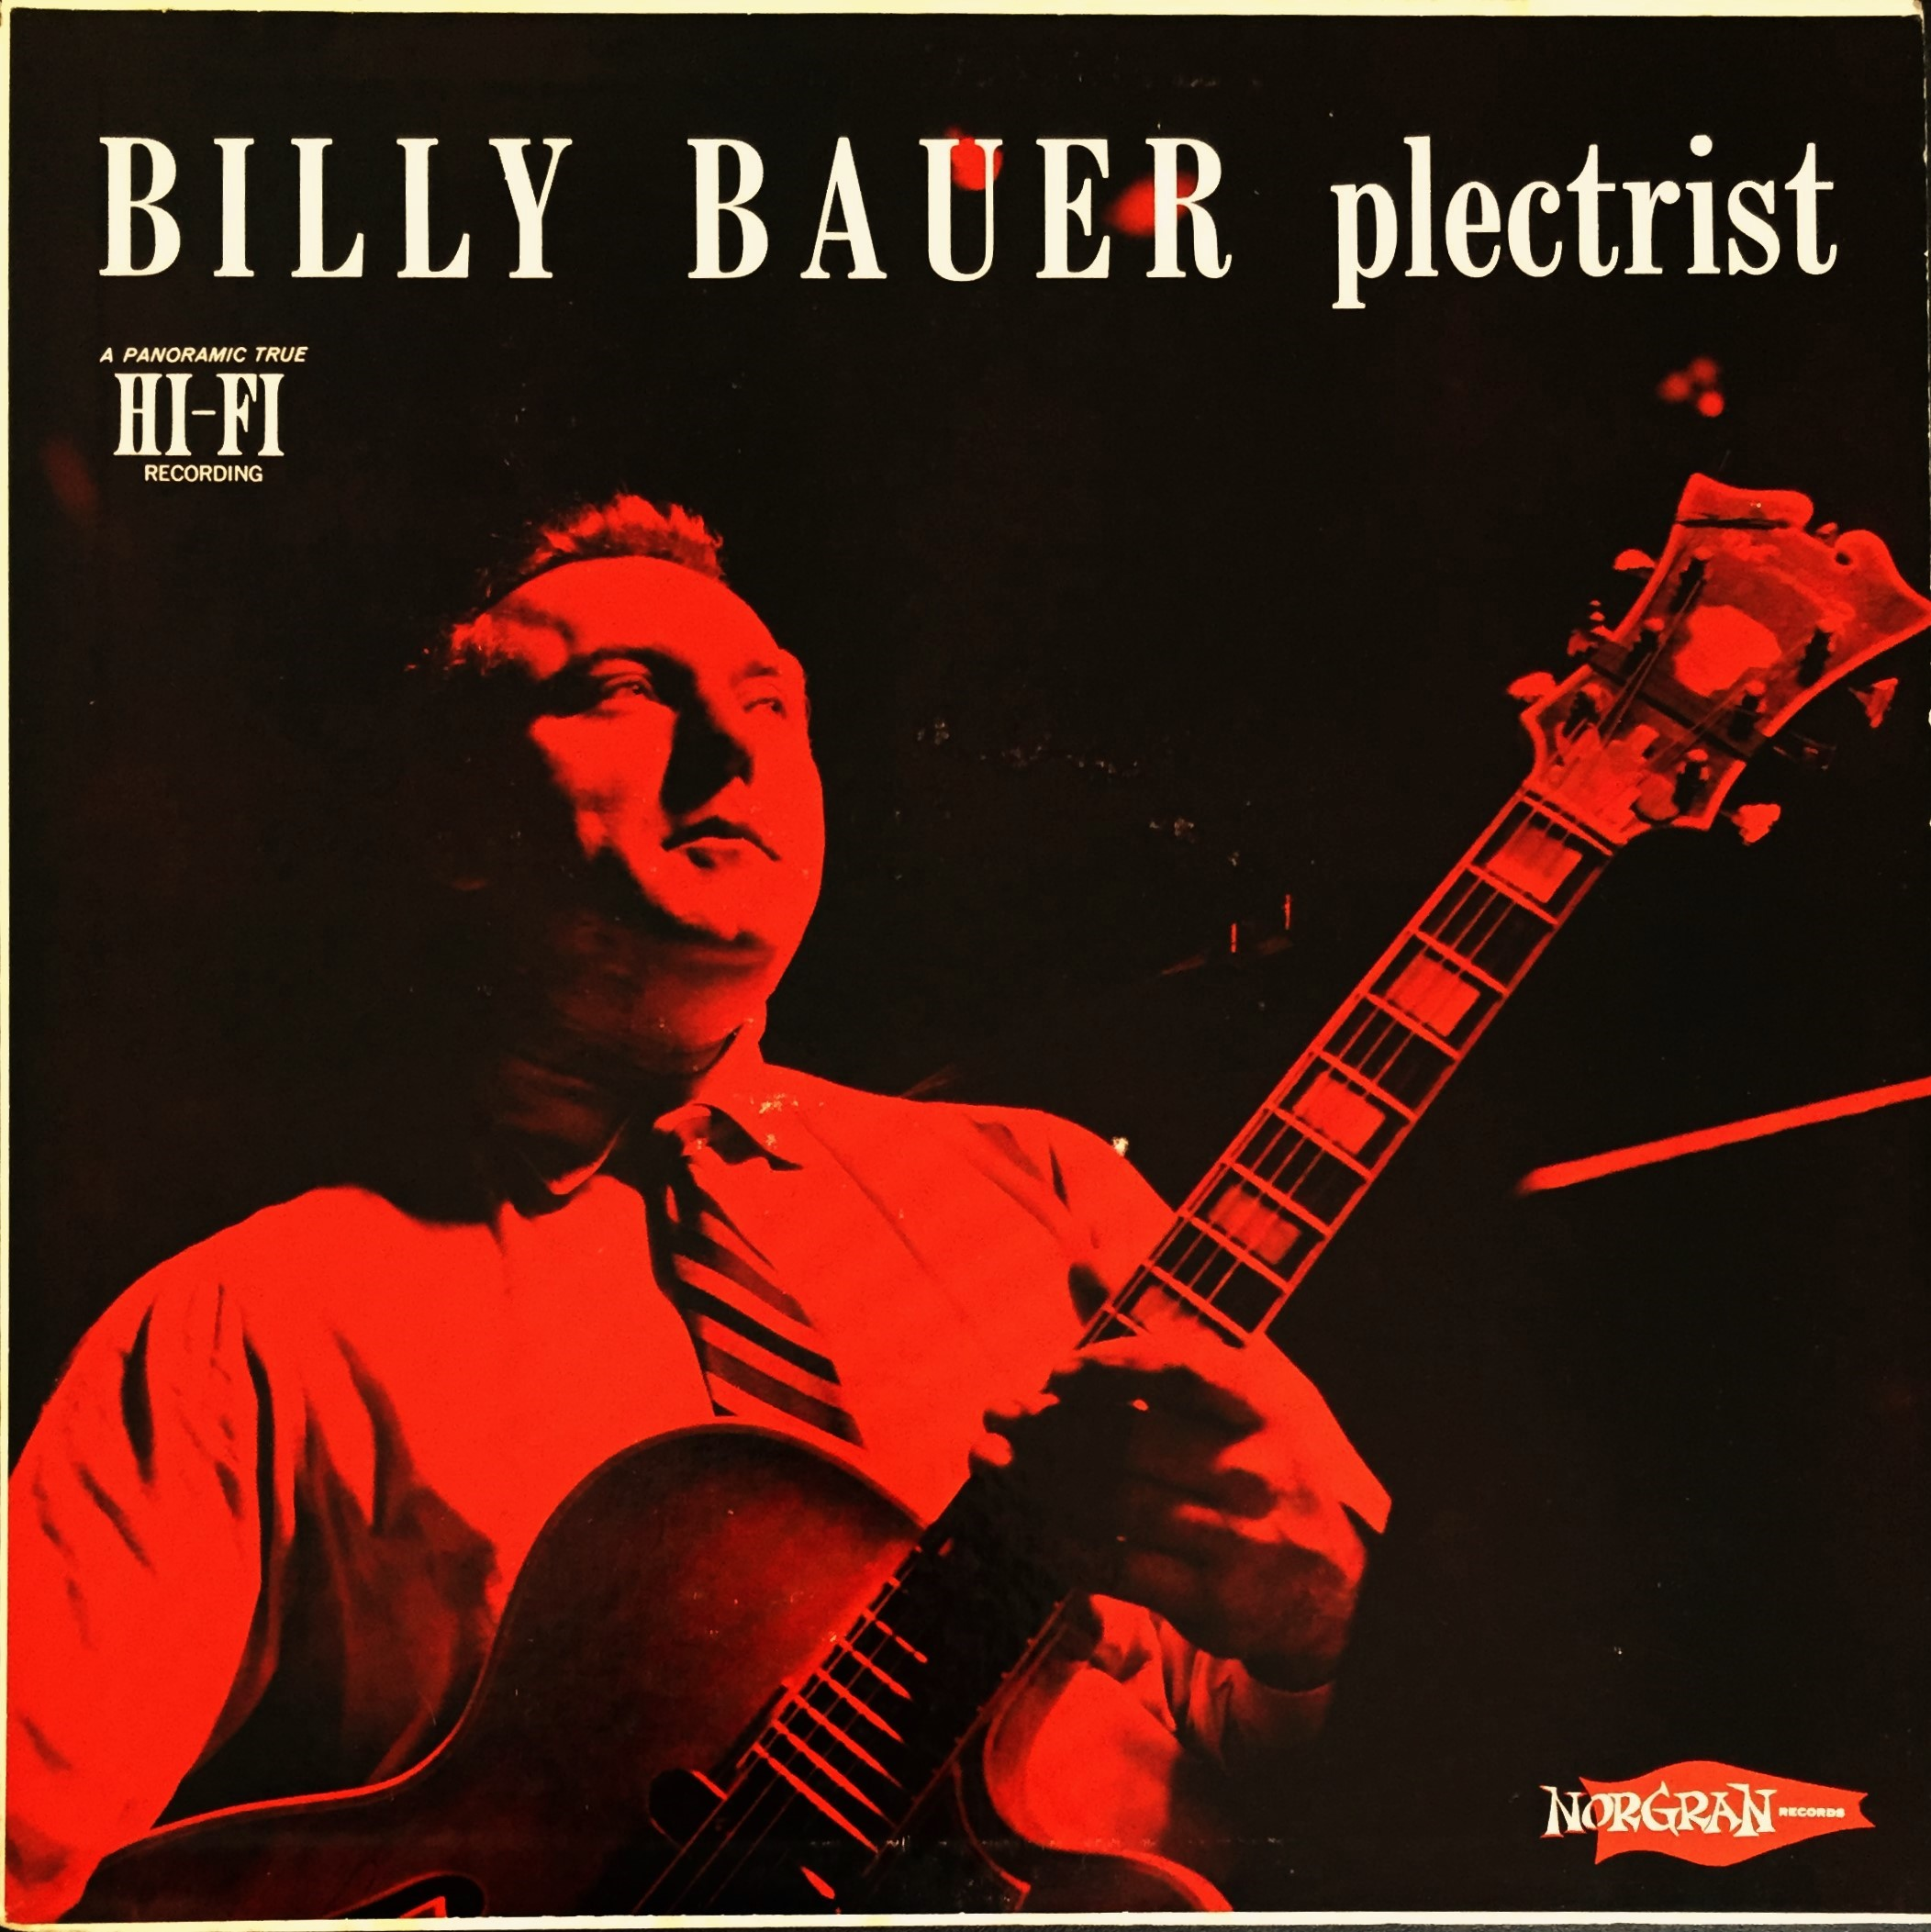 Billy Bauer